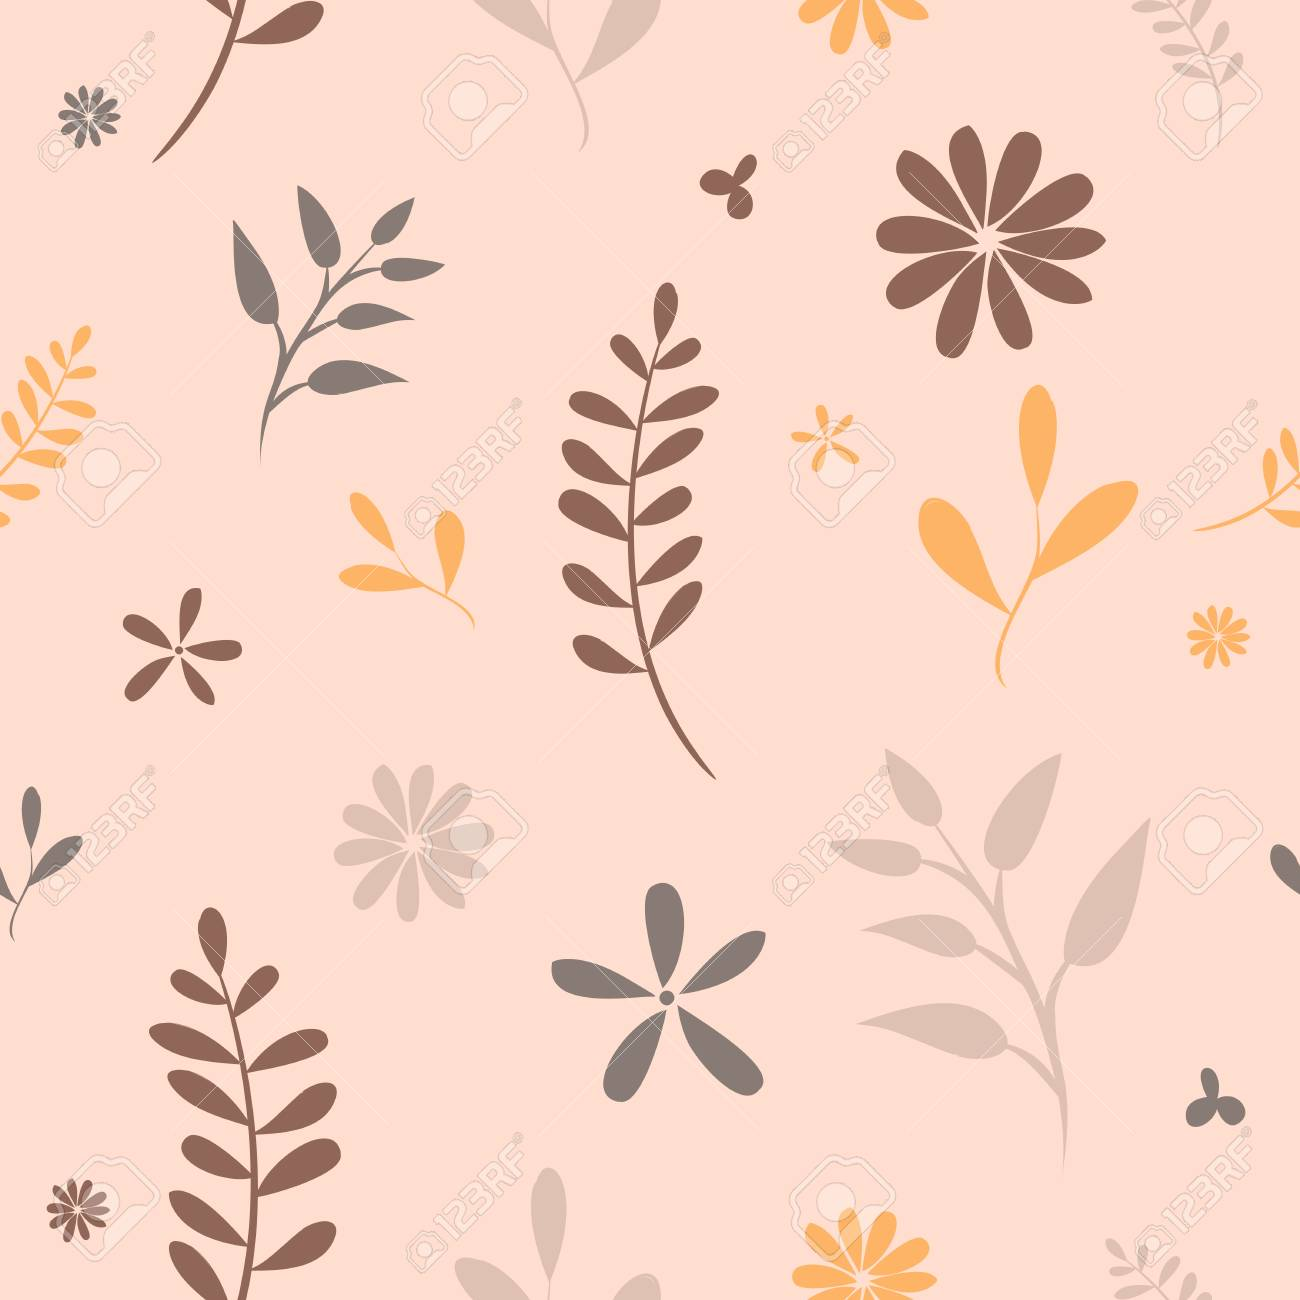 Flower Ornaments Autumn Leaves Hand Draw Seamless Pattern Retro ...